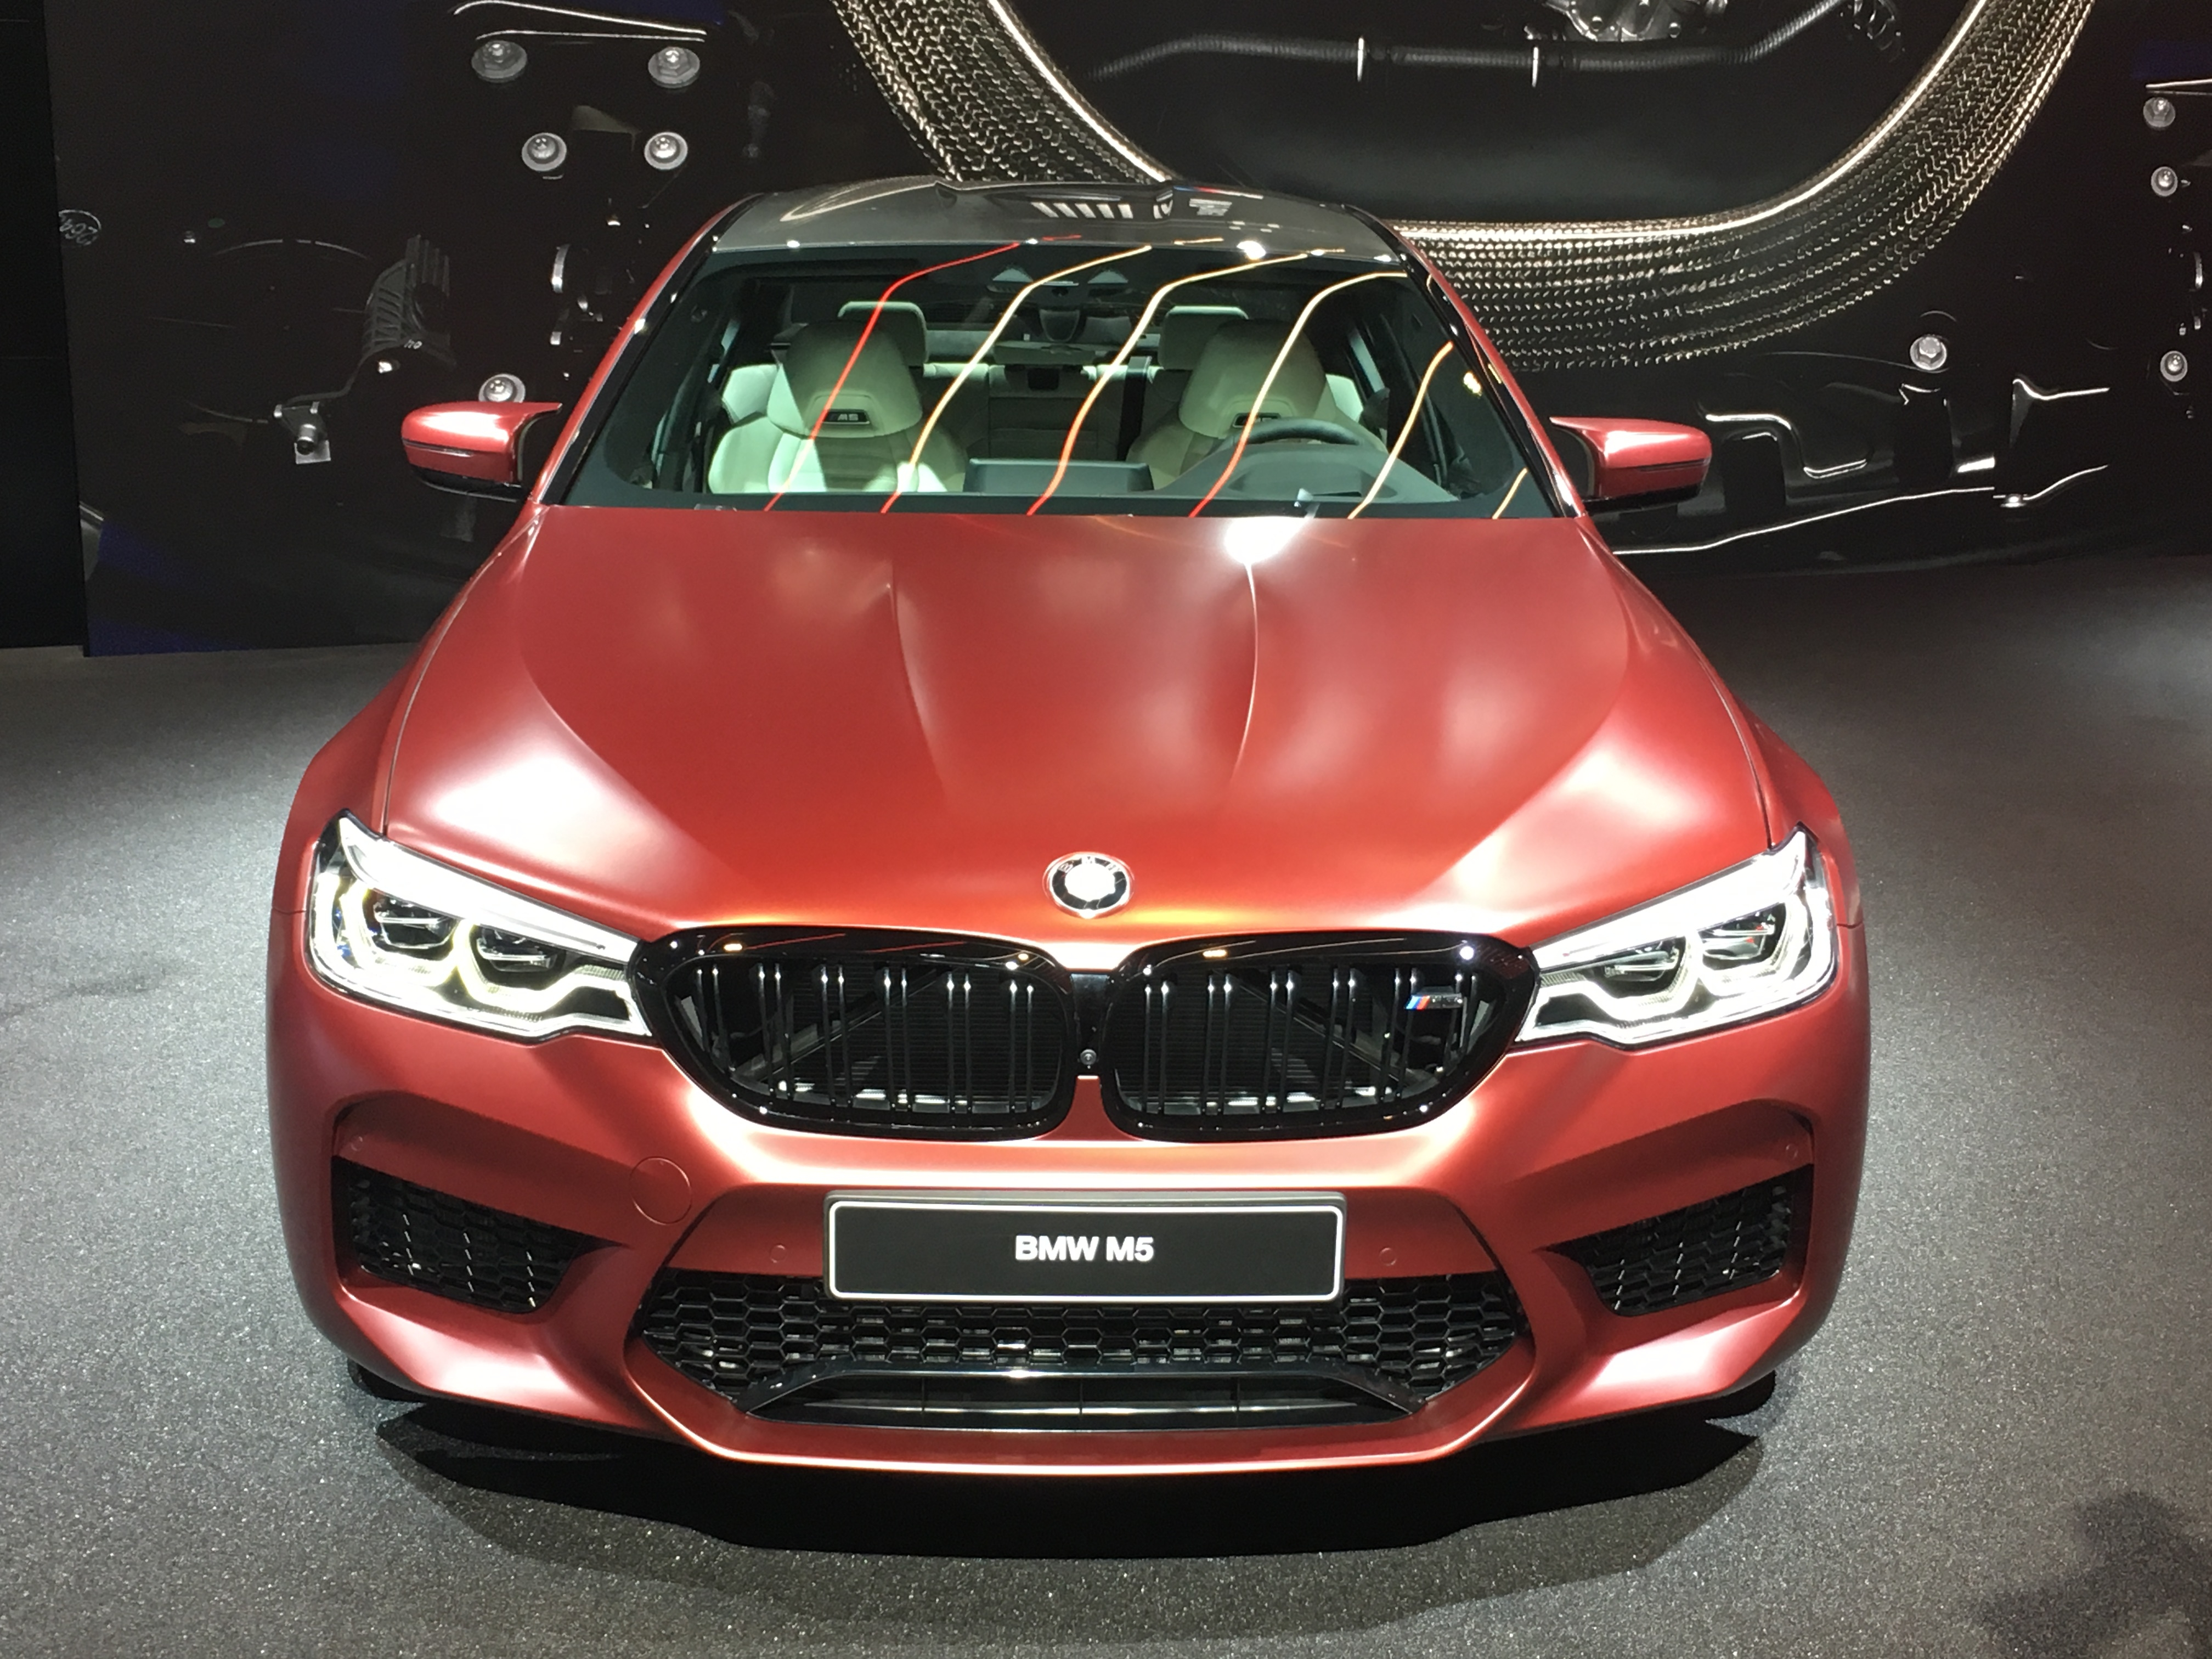 bmw m5 les premi res images en live du salon de francfort 2017. Black Bedroom Furniture Sets. Home Design Ideas